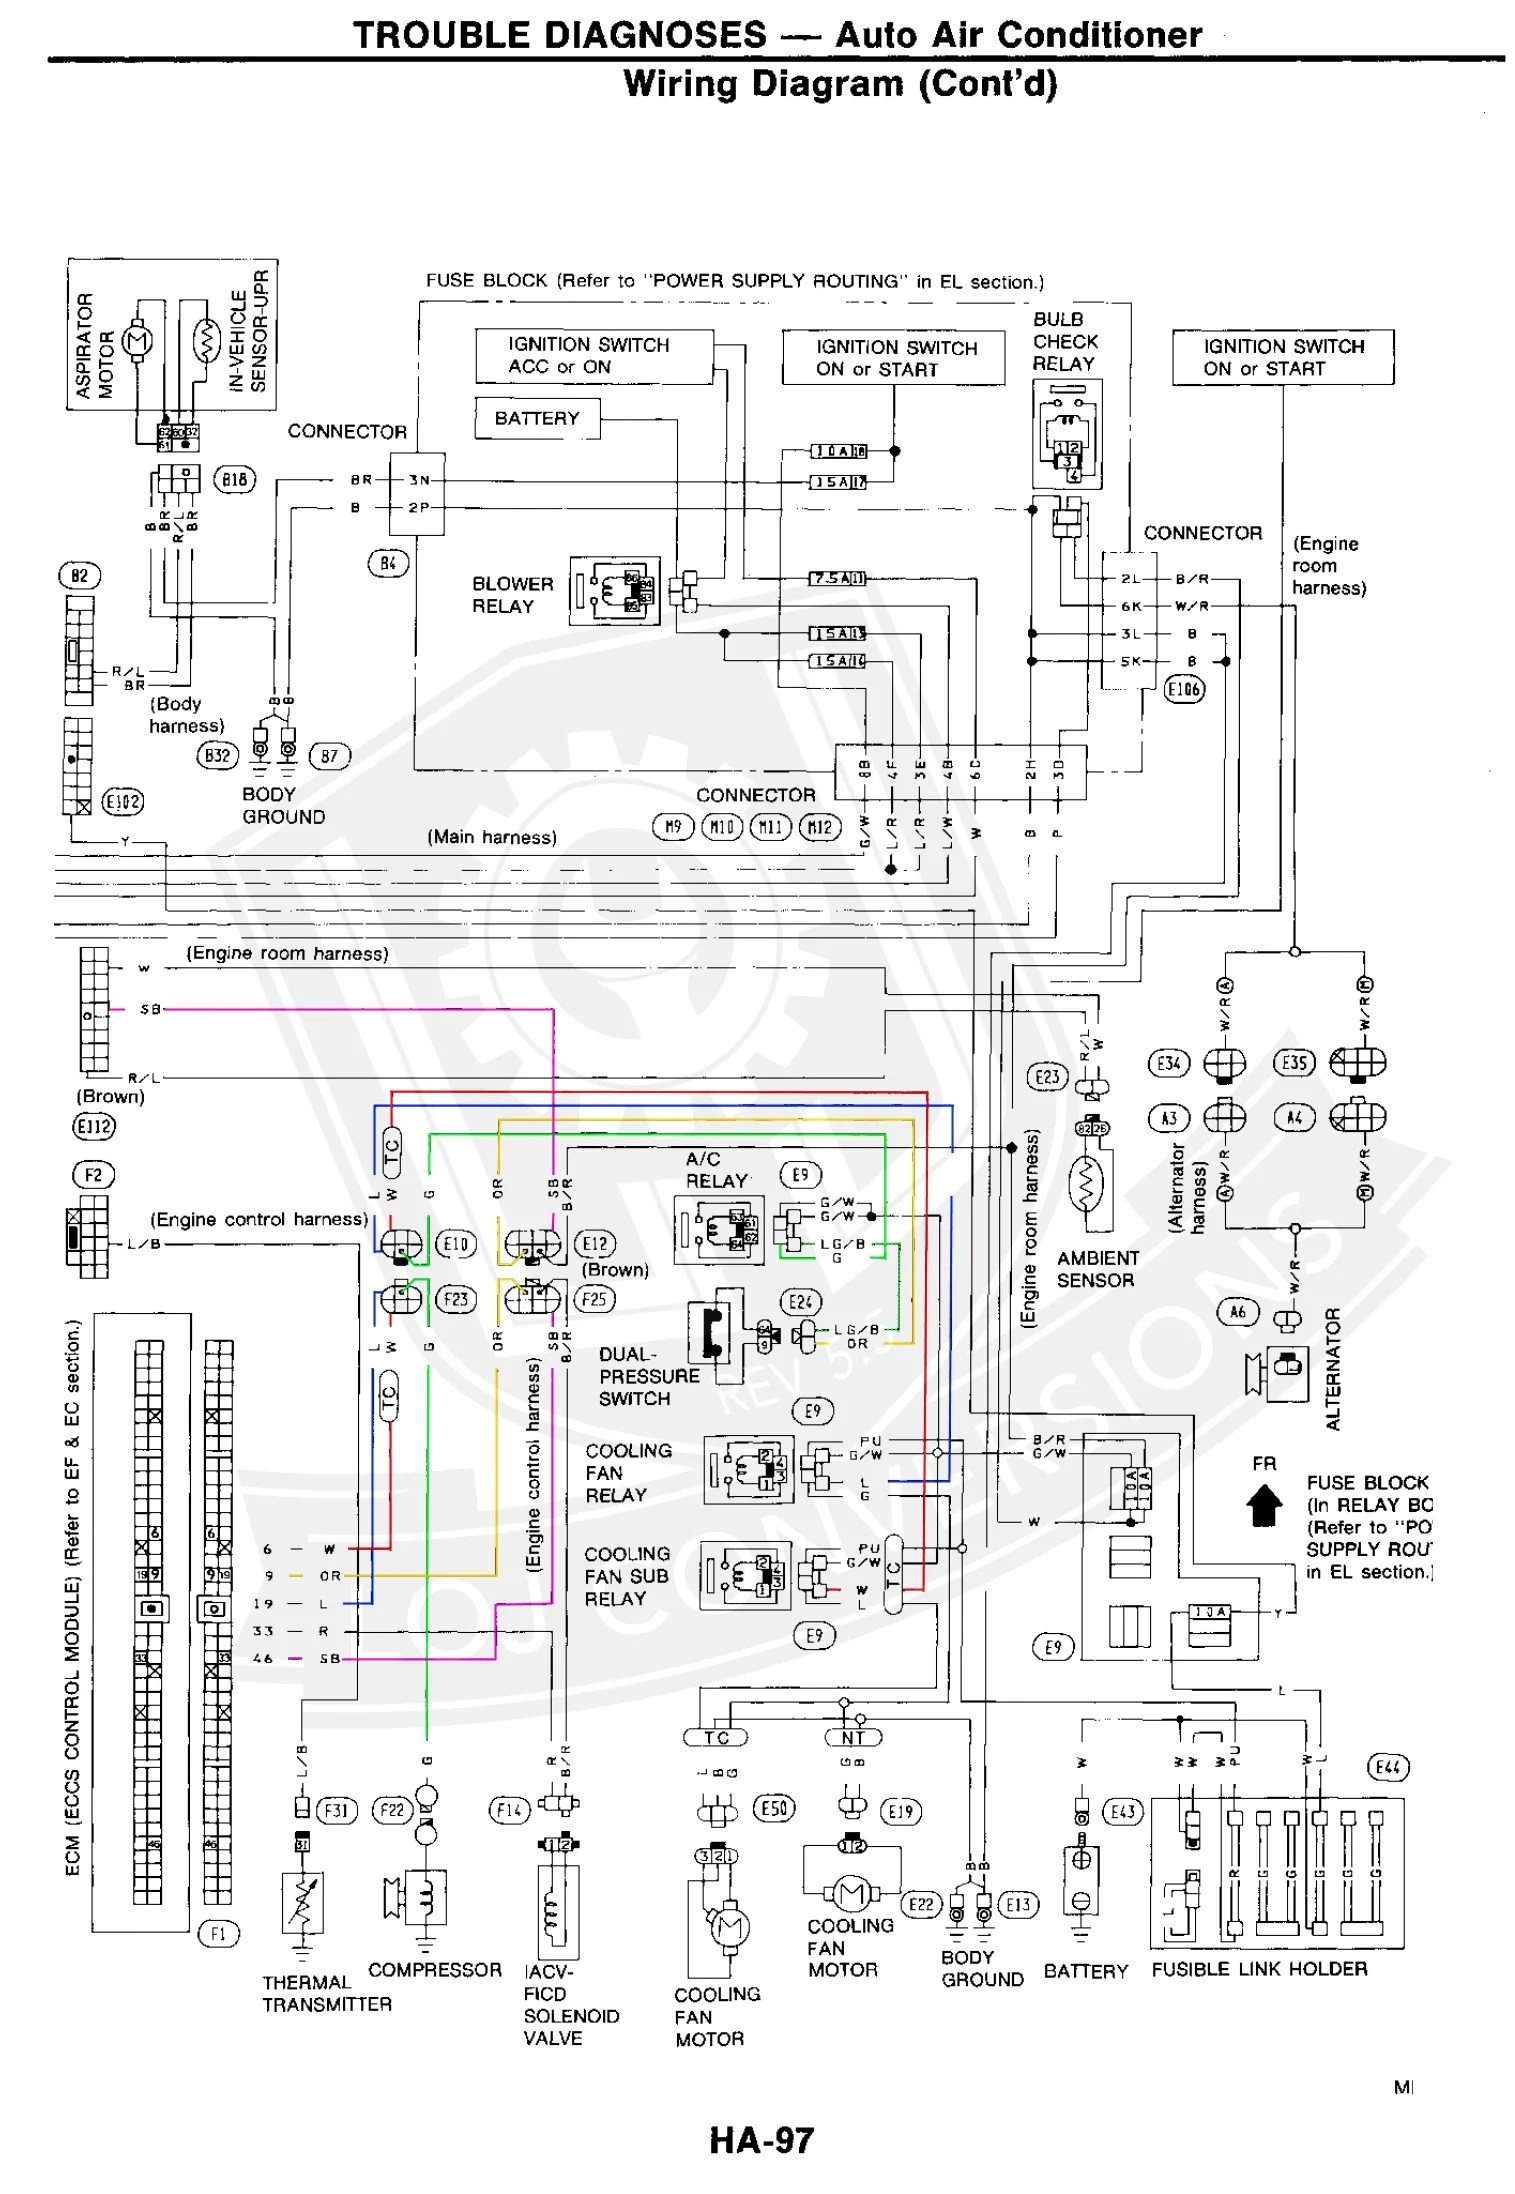 medium resolution of 1980 camaro wiring diagram wiring diagram centre 1980 camaro wiring diagram